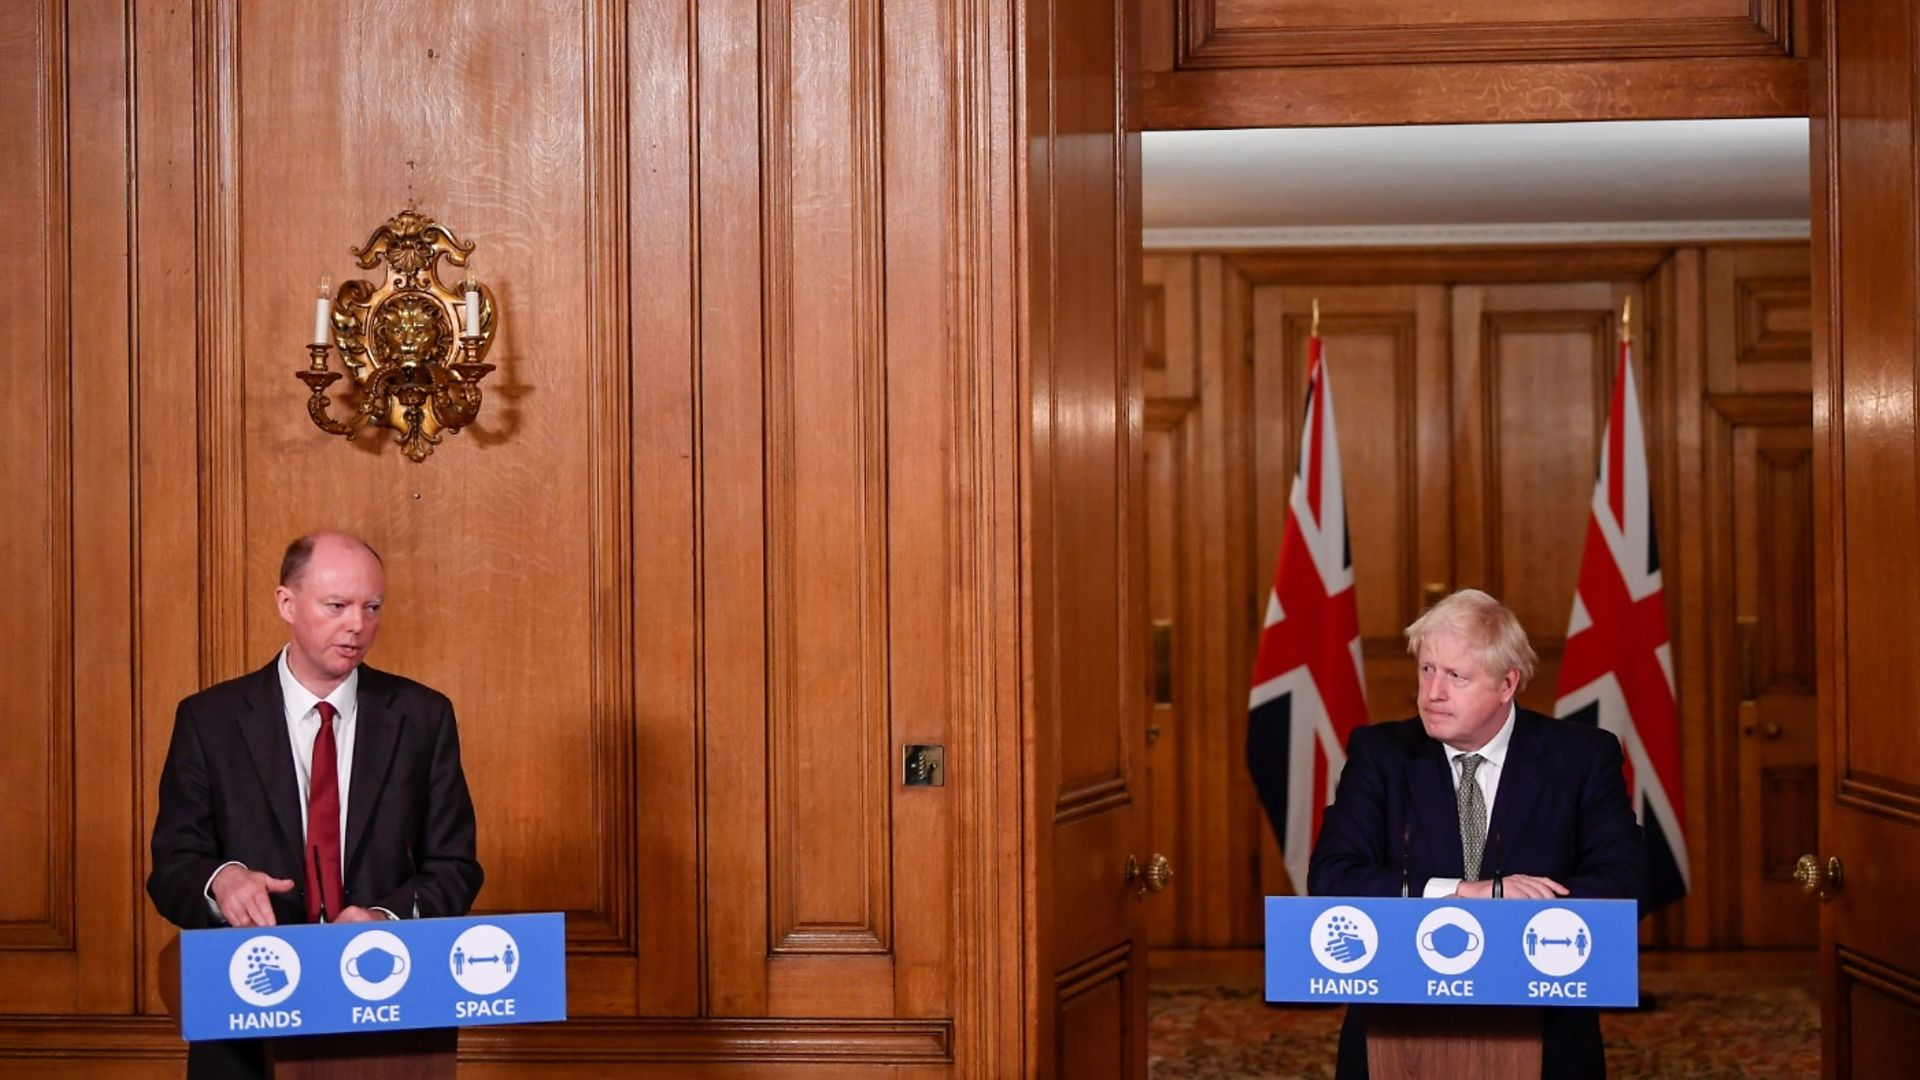 Chris Whitty and Boris Johnson at a Downing Street press conference - Credit: PA Wire/PA Images